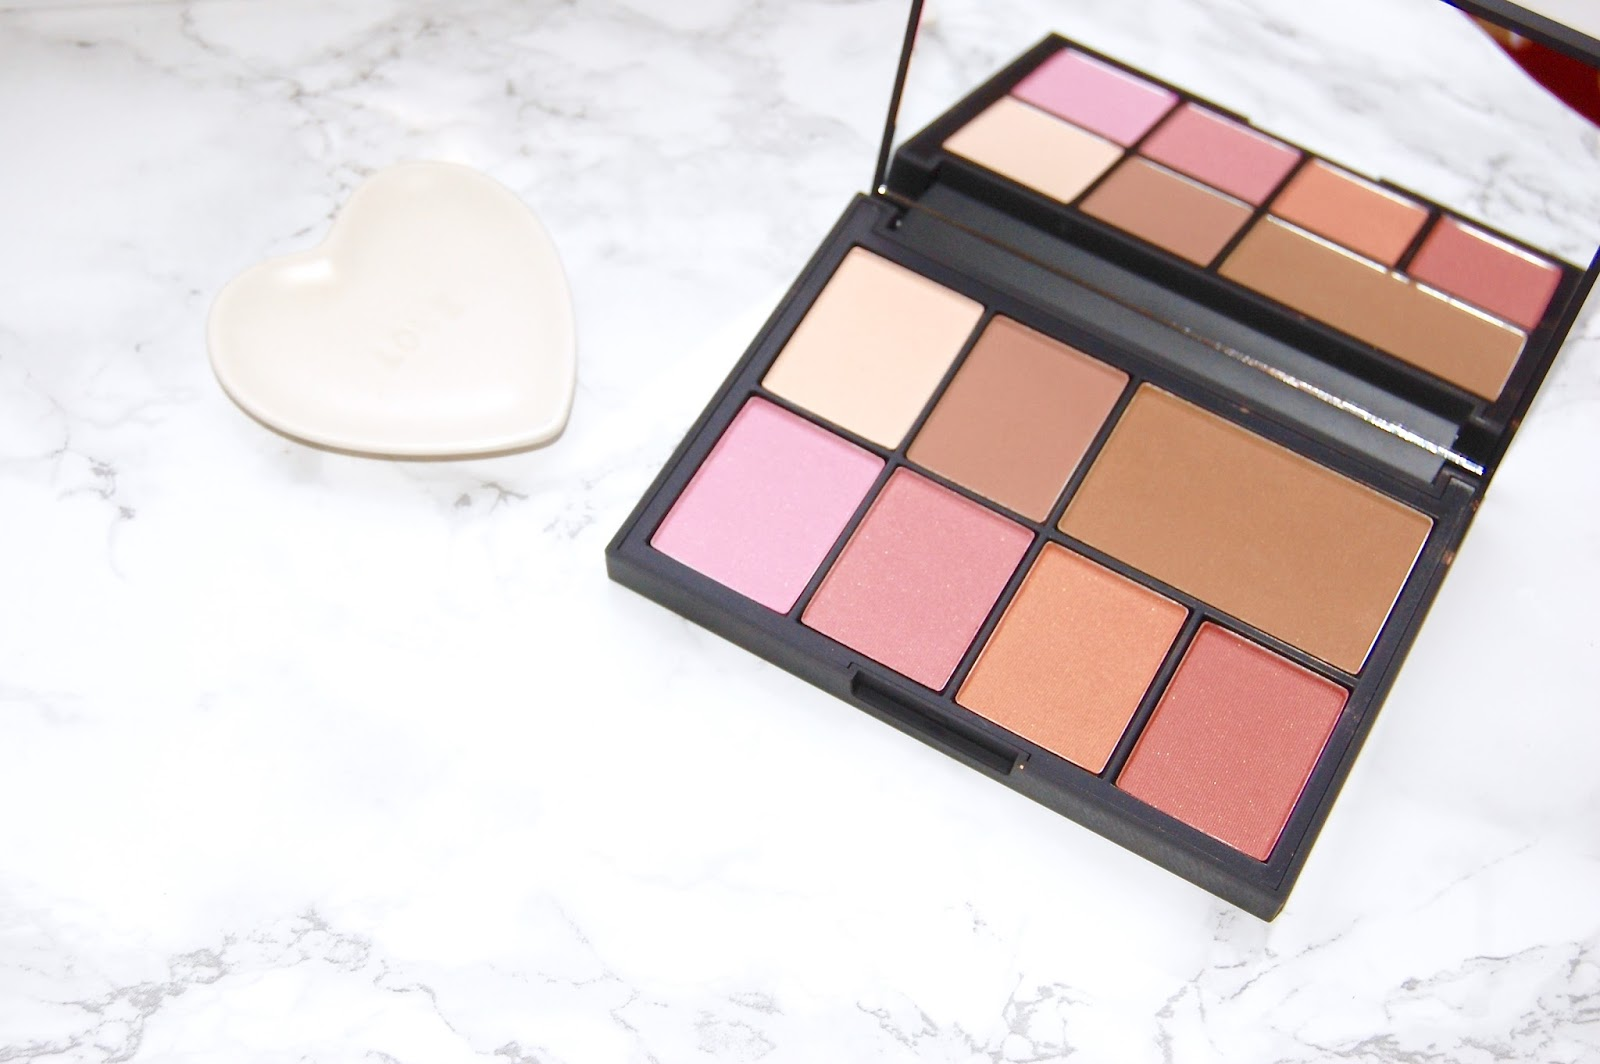 Read my review on Nars Steven Klein Blush Palette